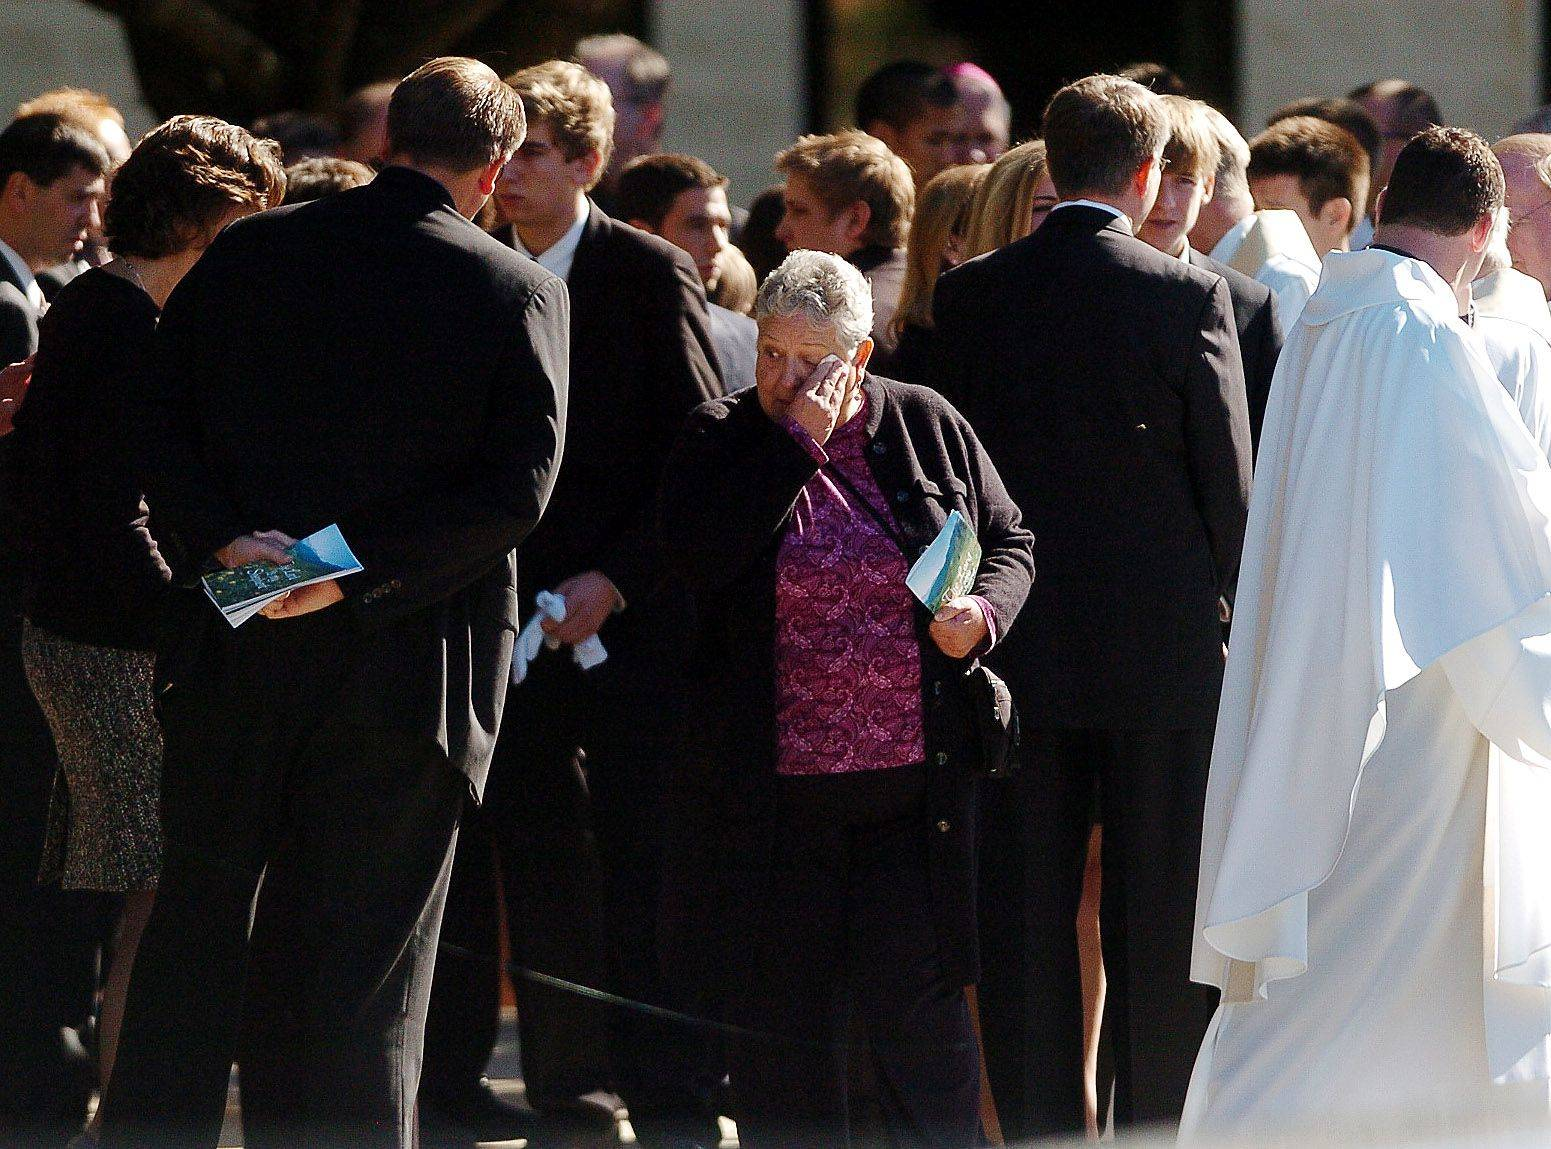 Family members console each other after the funeral for Declan Sullivan.